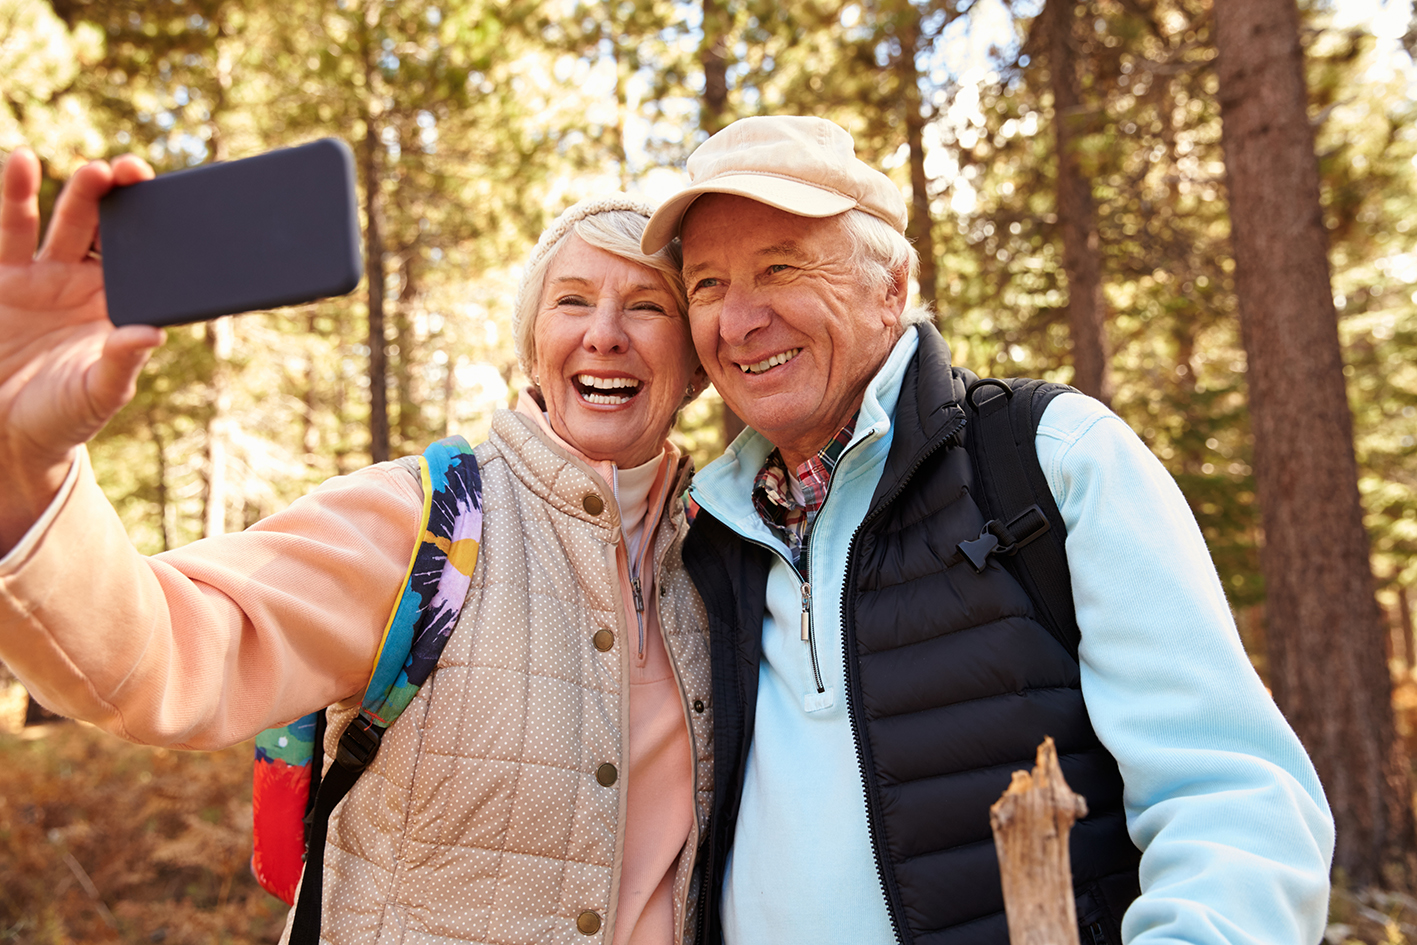 Elderly couple looking at phone.jpg